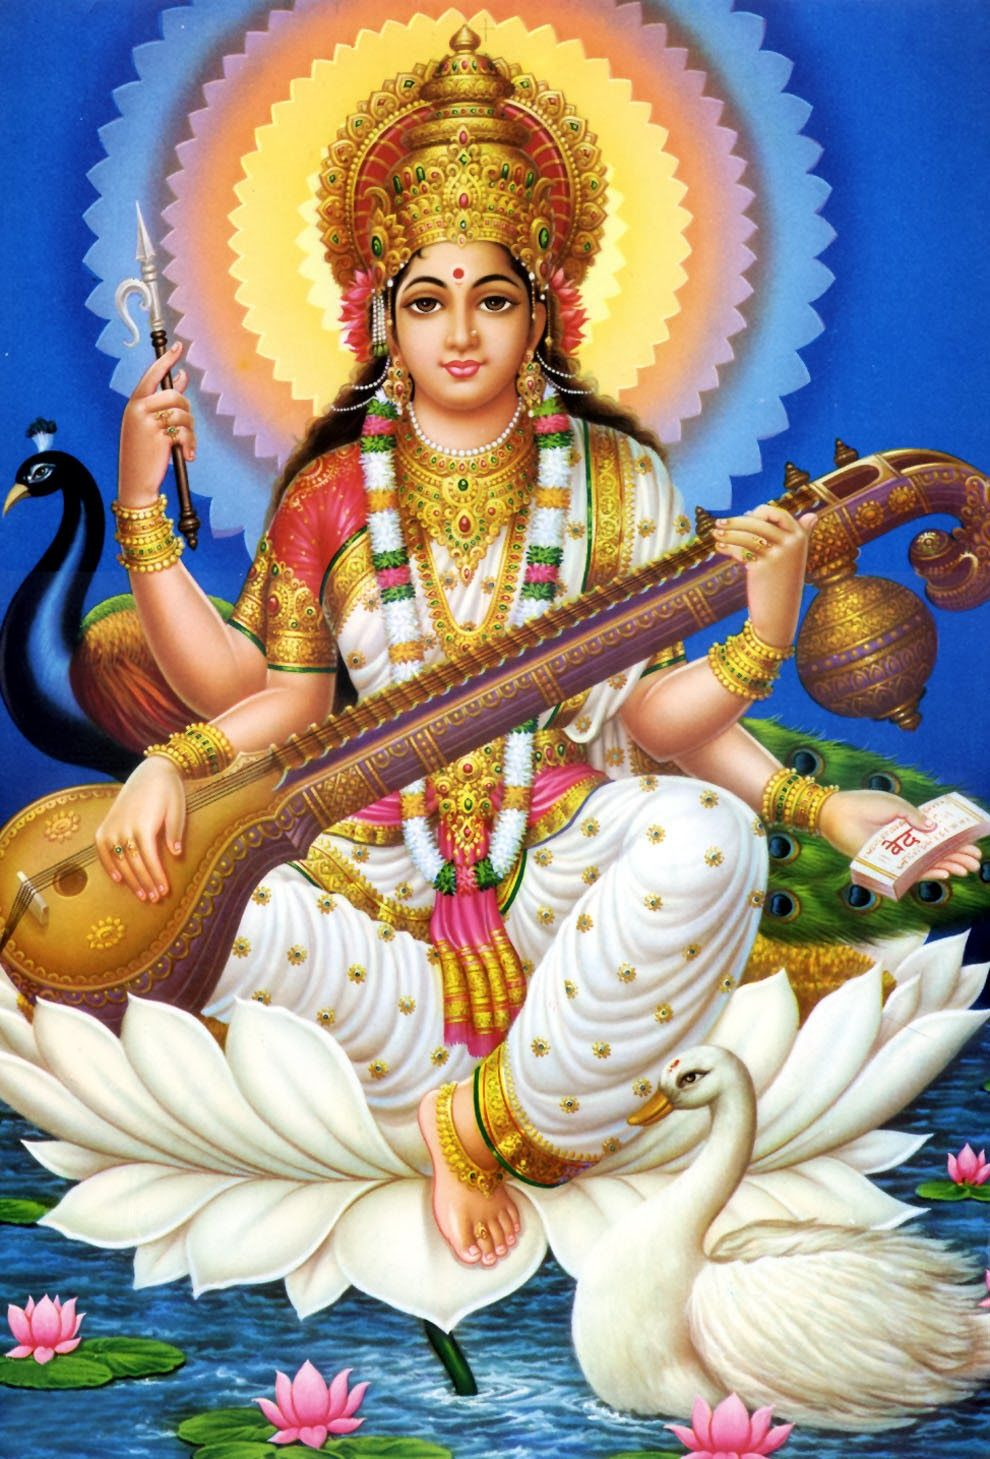 Simple Wallpaper Lord Saraswati - d31880ea93753f7ff110bafc593b1b06  Trends_598365.jpg